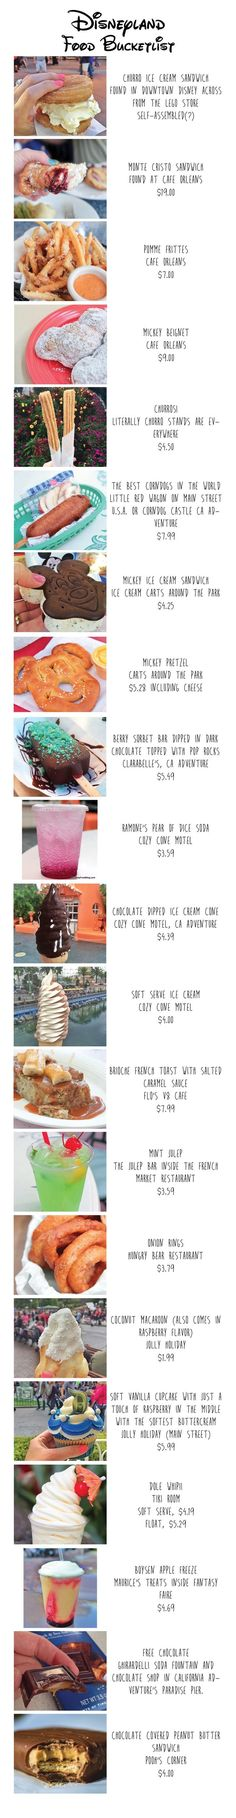 Disneyland Food Bucketlist